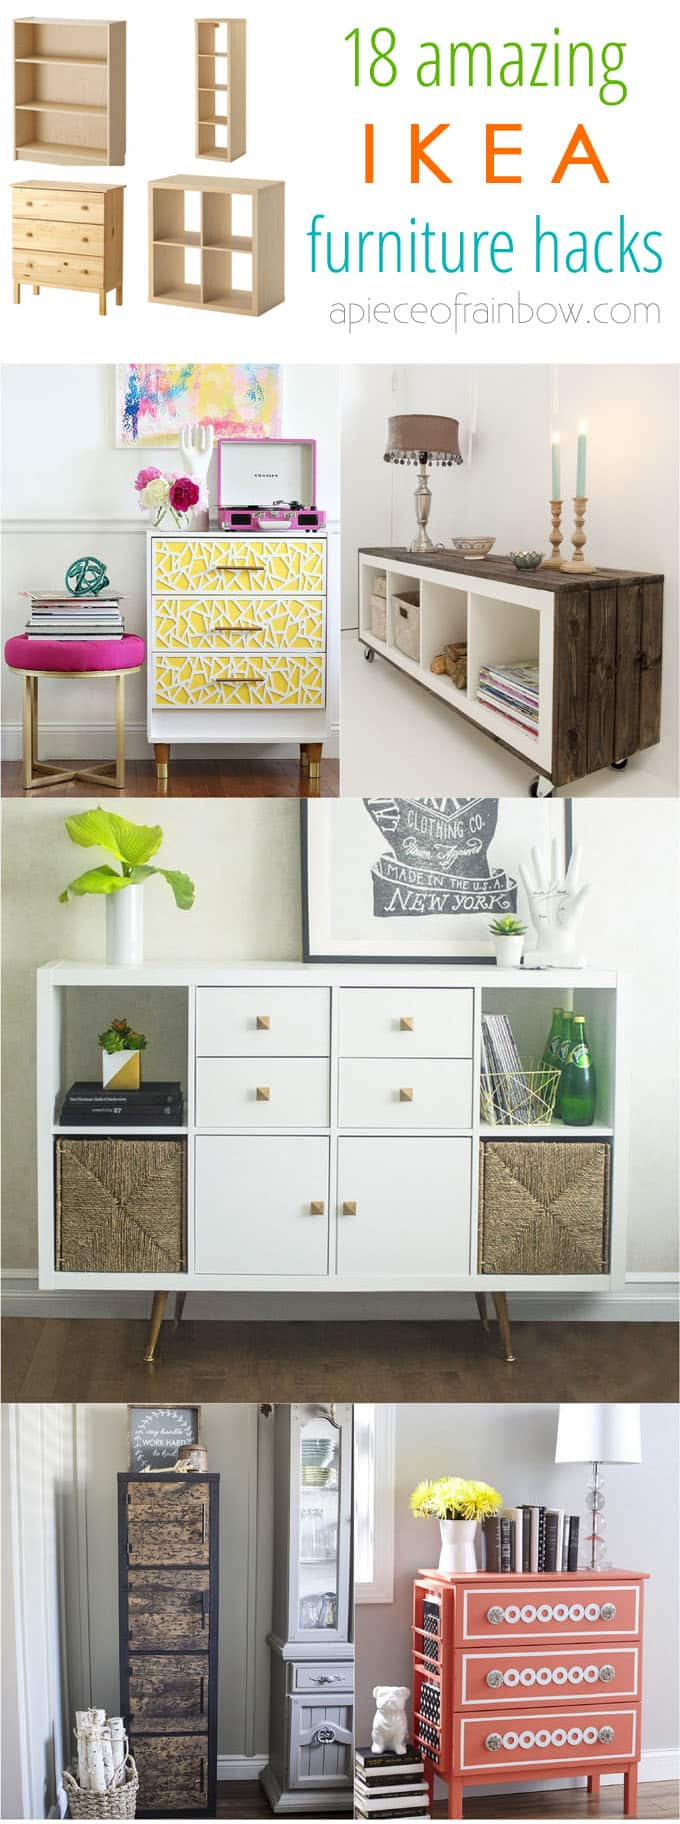 Easy Custom Furniture With 18 Amazing Ikea Hacks A Piece